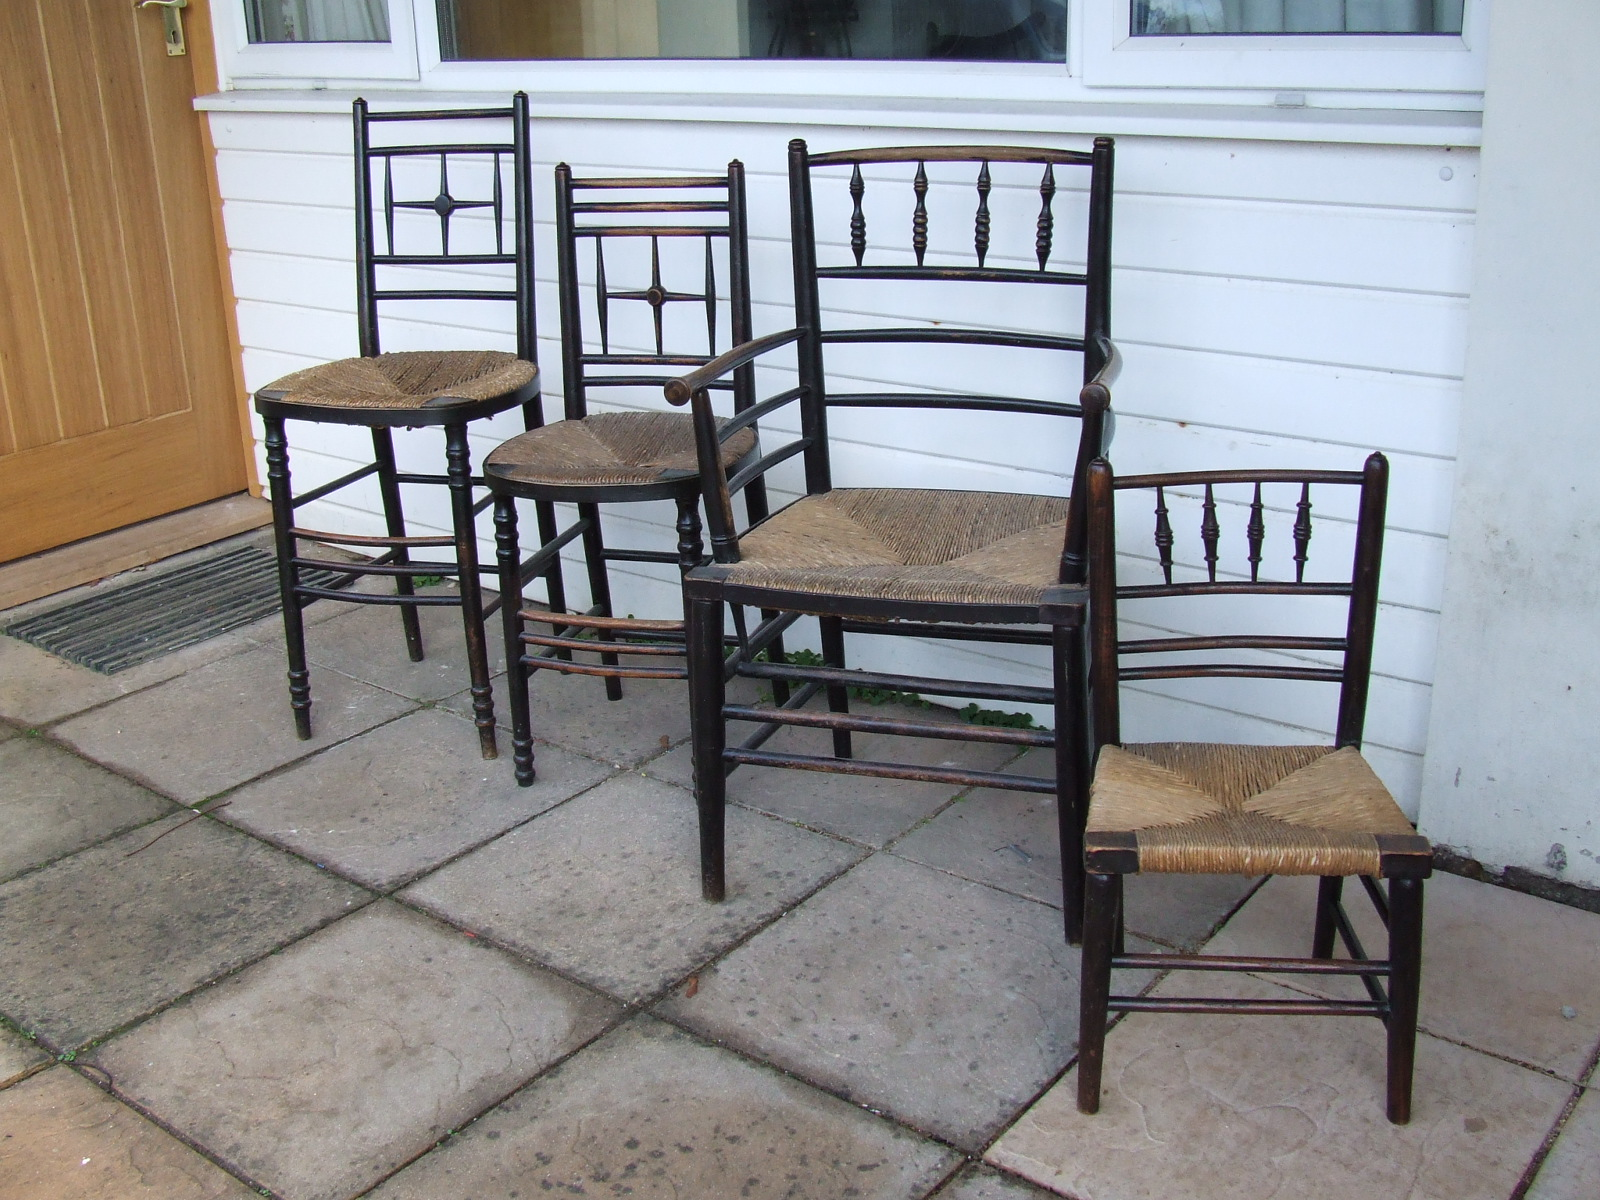 Former Glory Seat Weaving A Collection Of William Morris Chairs - William morris chairs